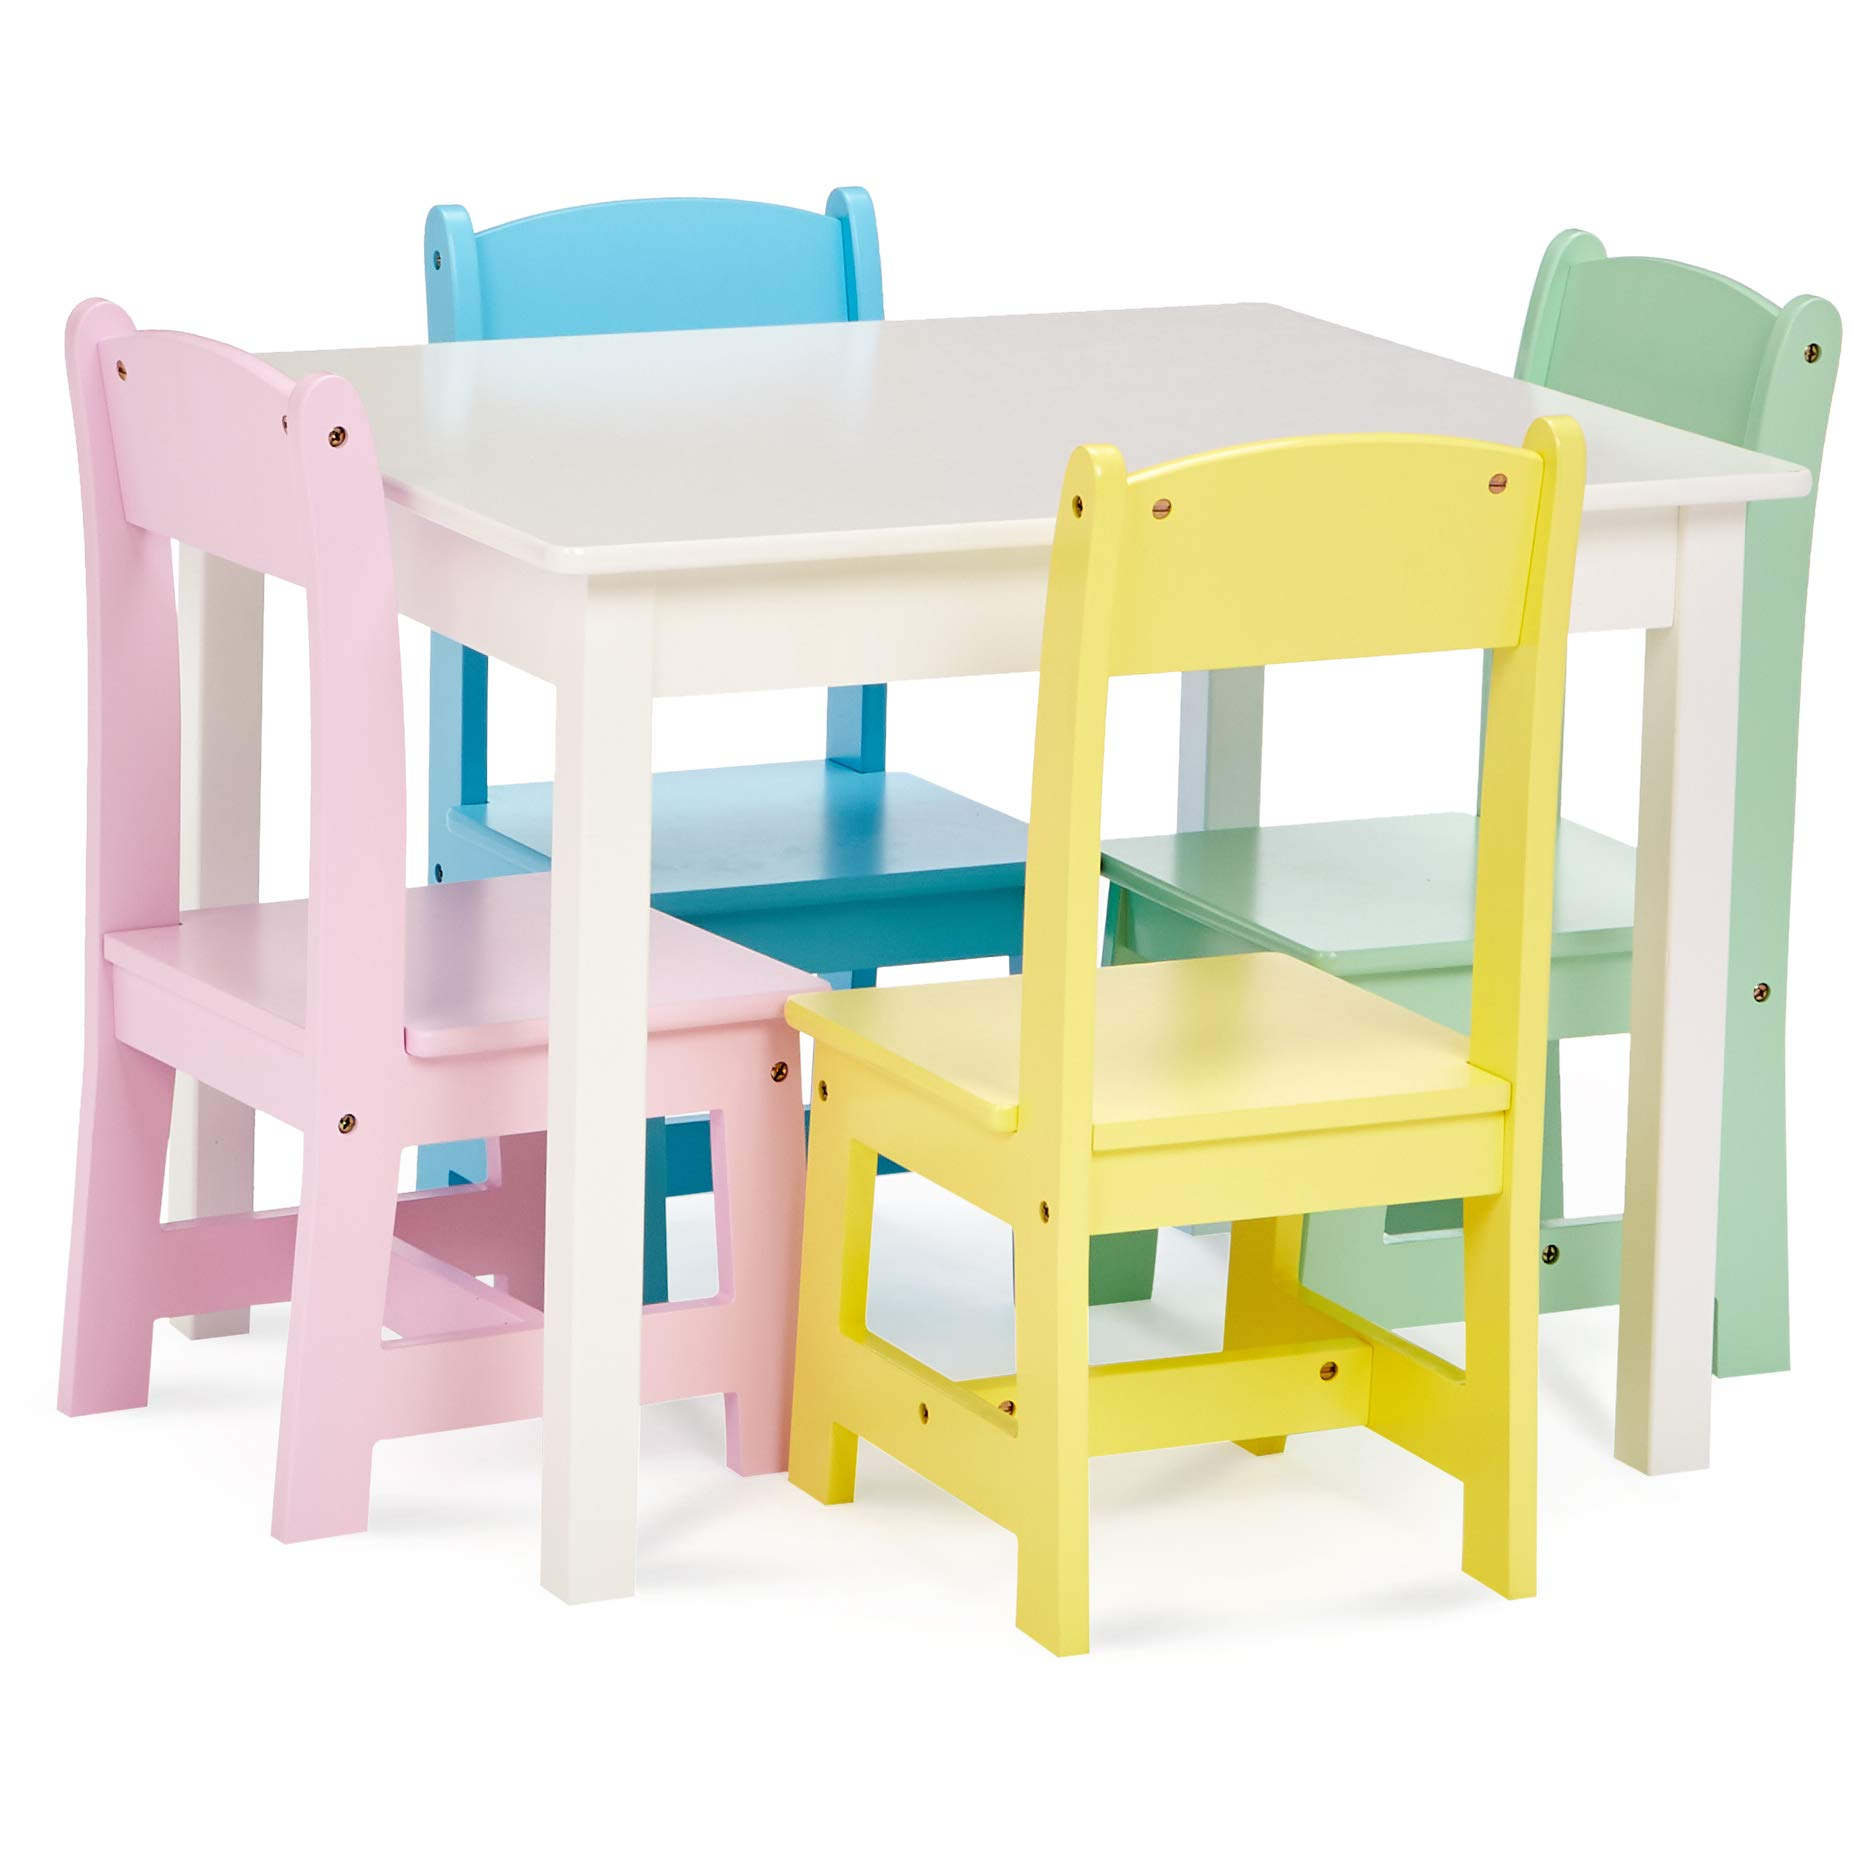 Phoenix Home AVH072009 Table and Chair, White/Pastel